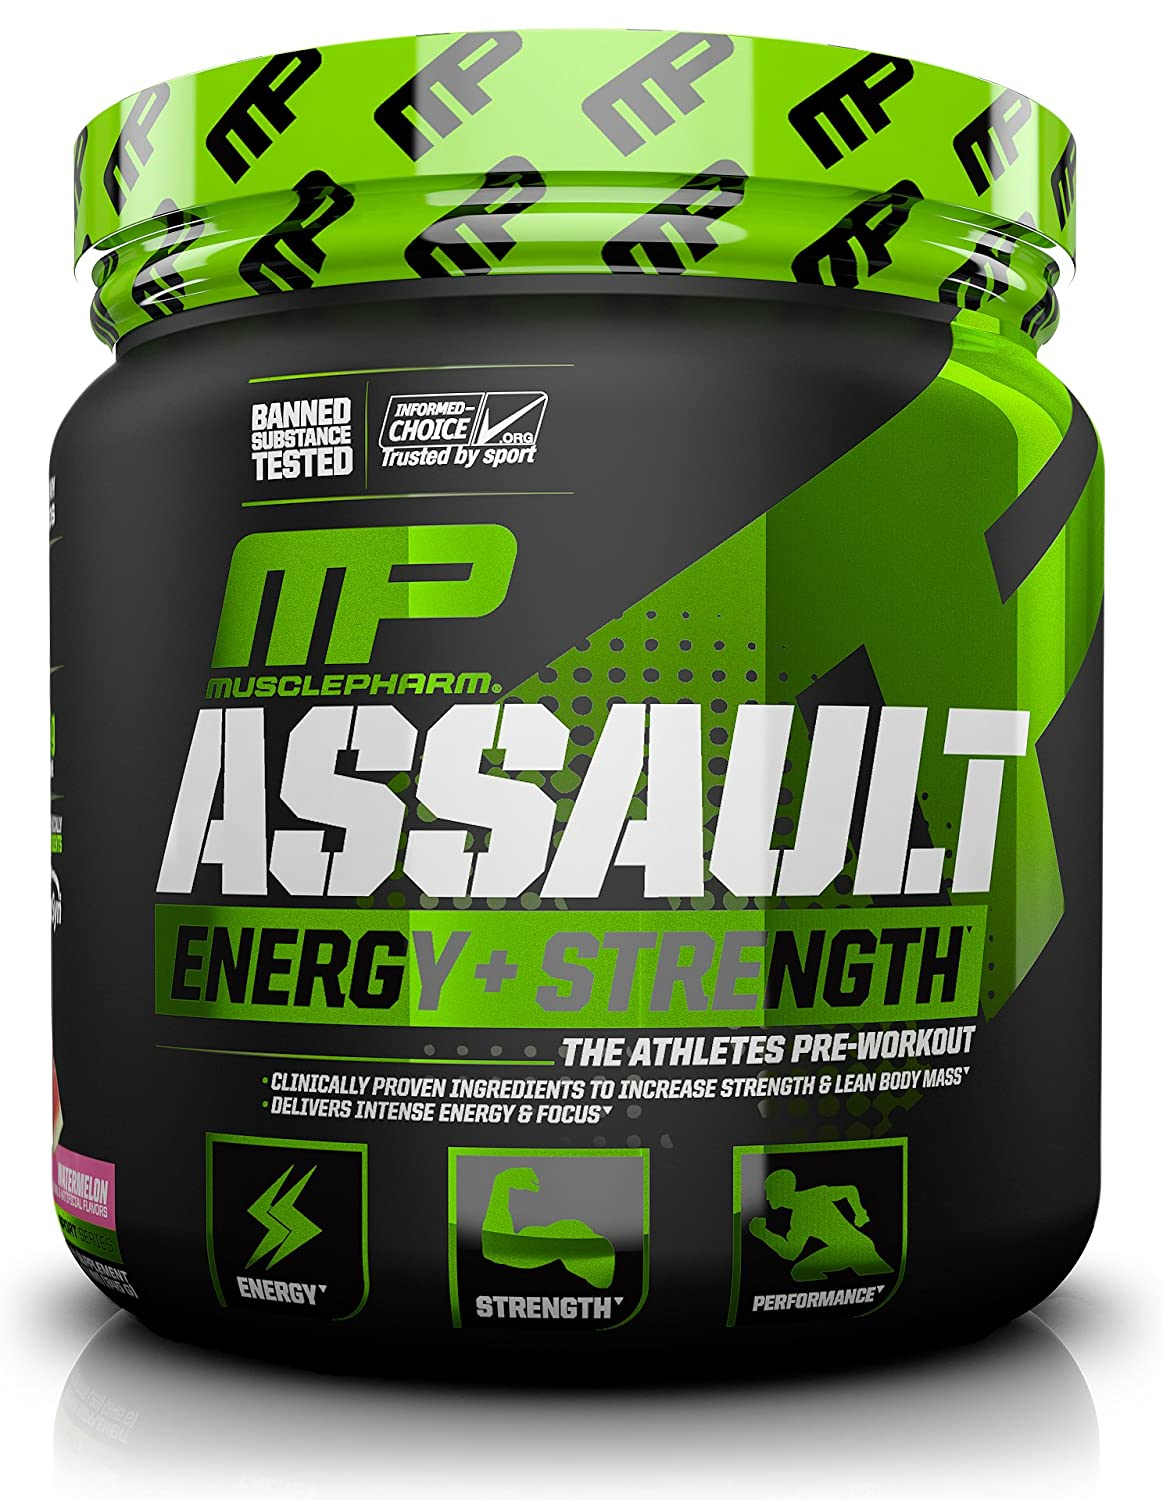 MusclePharm Assault Sport Pre-Workout Powder with High Dose Energy, Focus, Strength and Endurance - Creatine, Taurine and Caffeine, Watermelon, 30 Servings